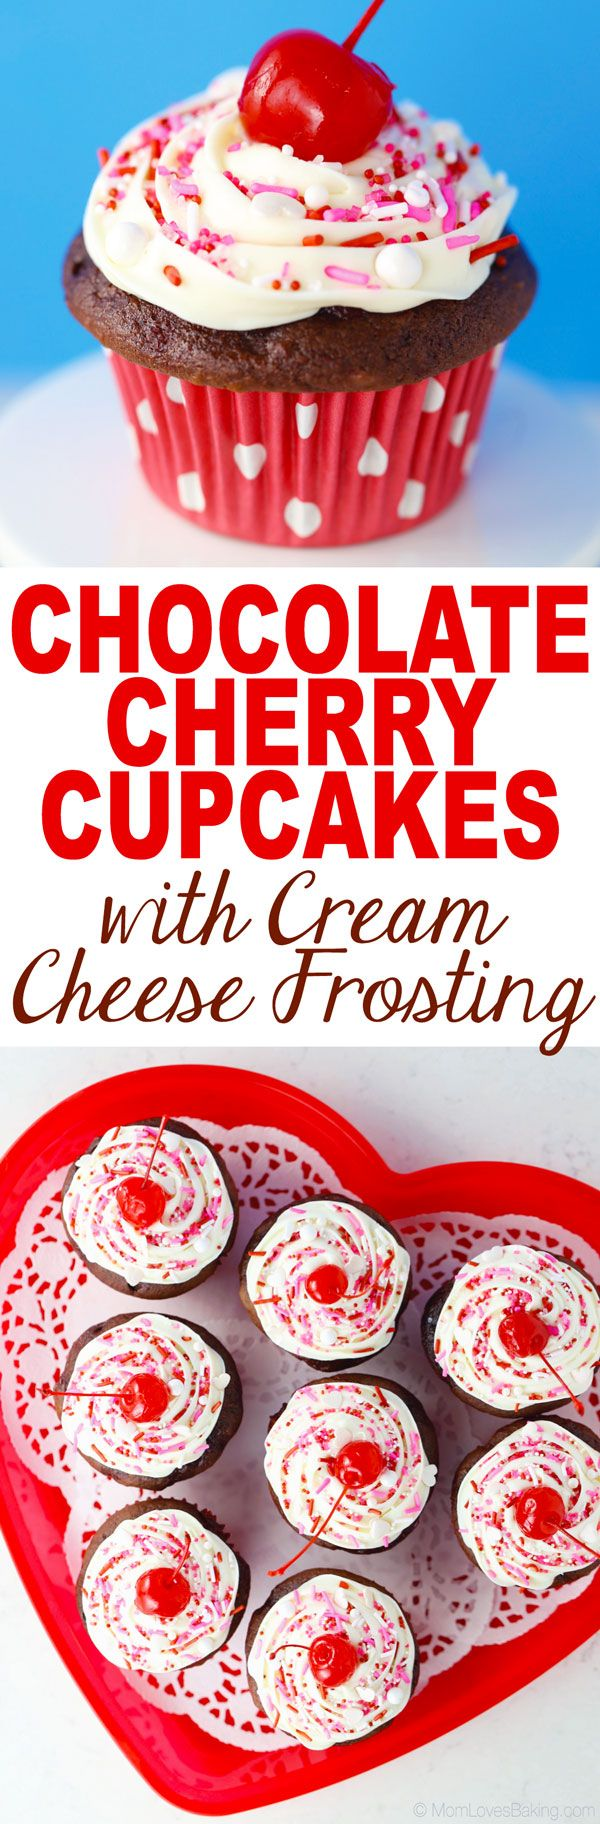 We're sharing the love this February with delicious Valentine cupcakes from Pillsbury! Find the recipe for these Chocolate Cherry Cupcakes on my blog. #ad #DoughboySurprise